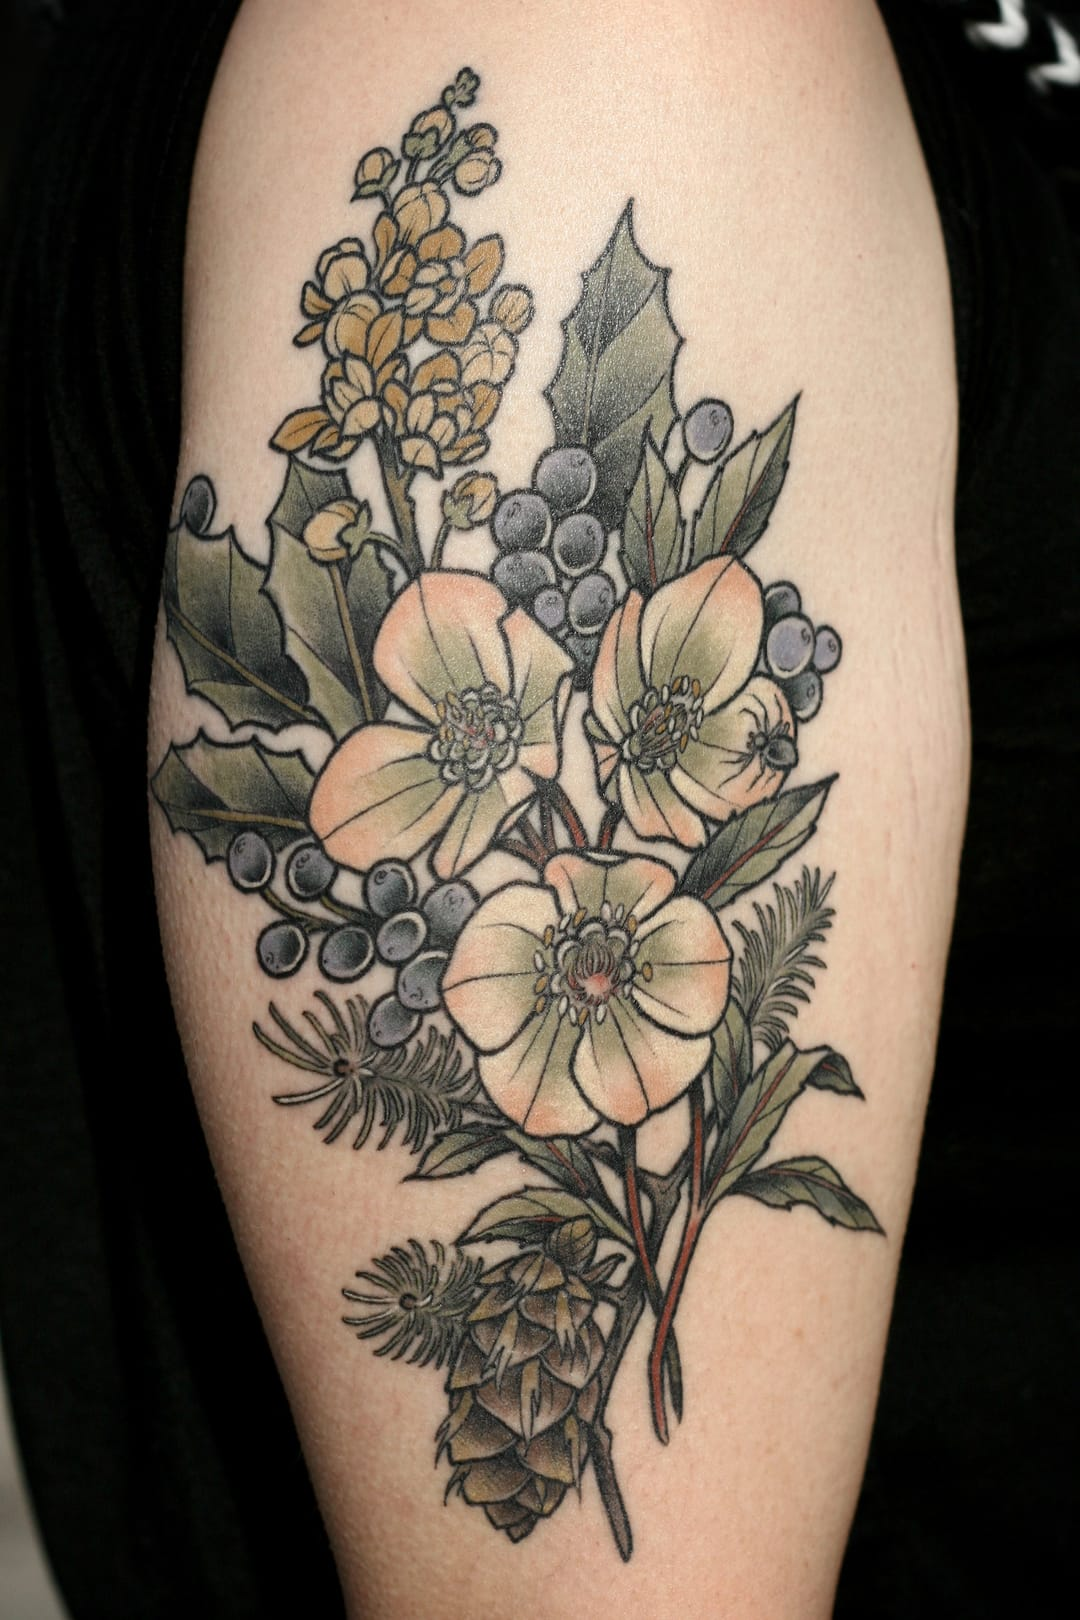 Flower tattoo by Kirsten